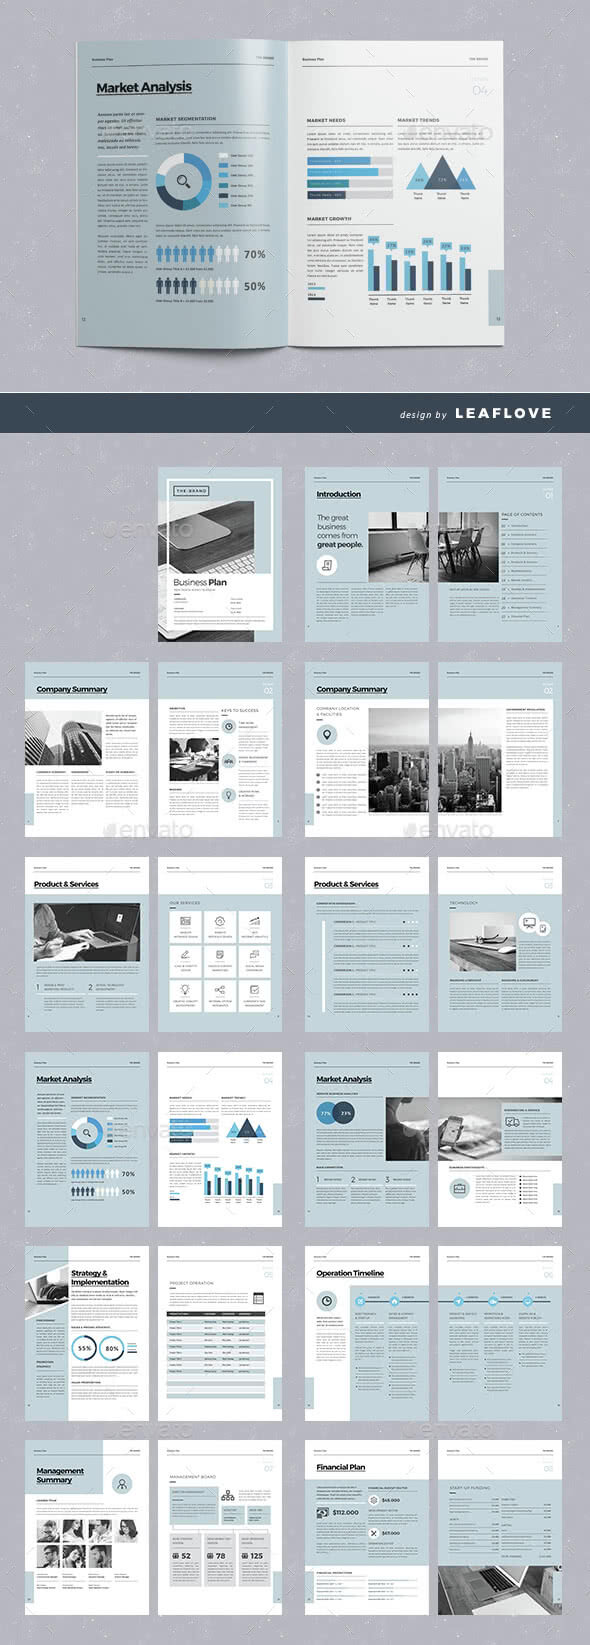 75 Fresh Indesign Templates And Where To Find More within Free Indesign Report Templates